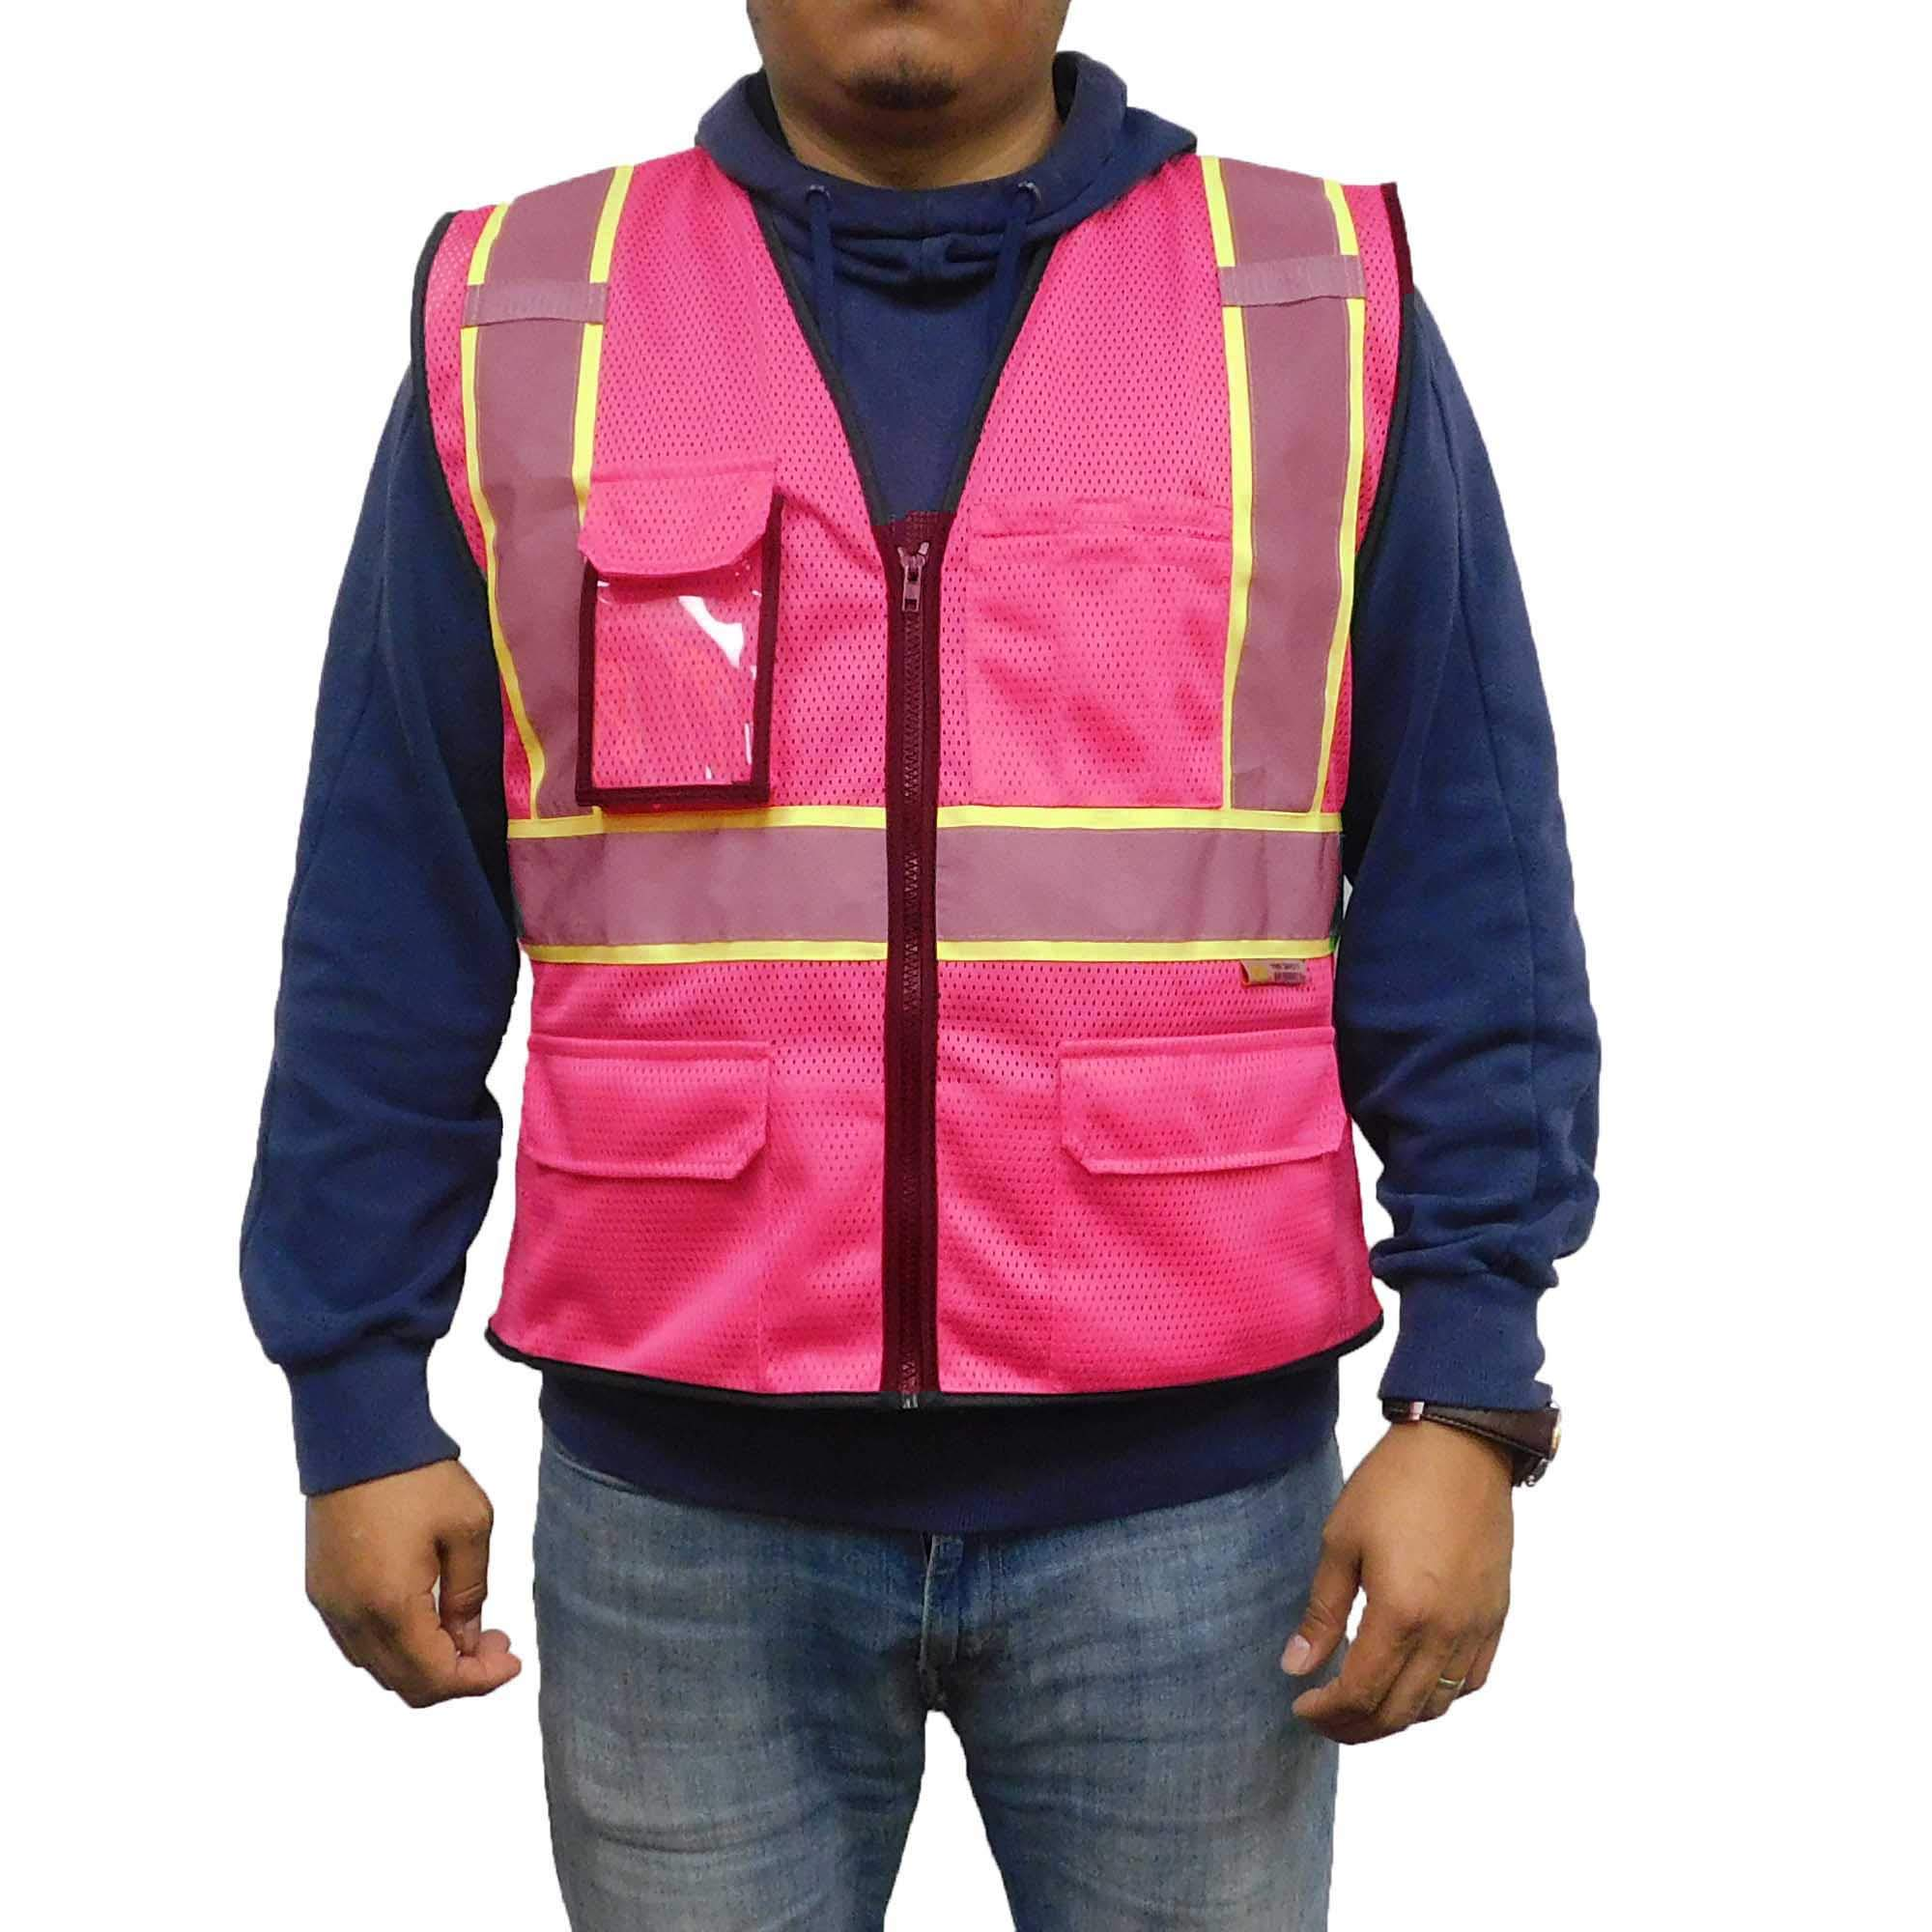 """3C Products SV2570 Deluxe Ultra Cool Mesh Safety Vest 2"""" Reflective w/Yellow Binding Zipper 9 Pockets Hot Pink"""